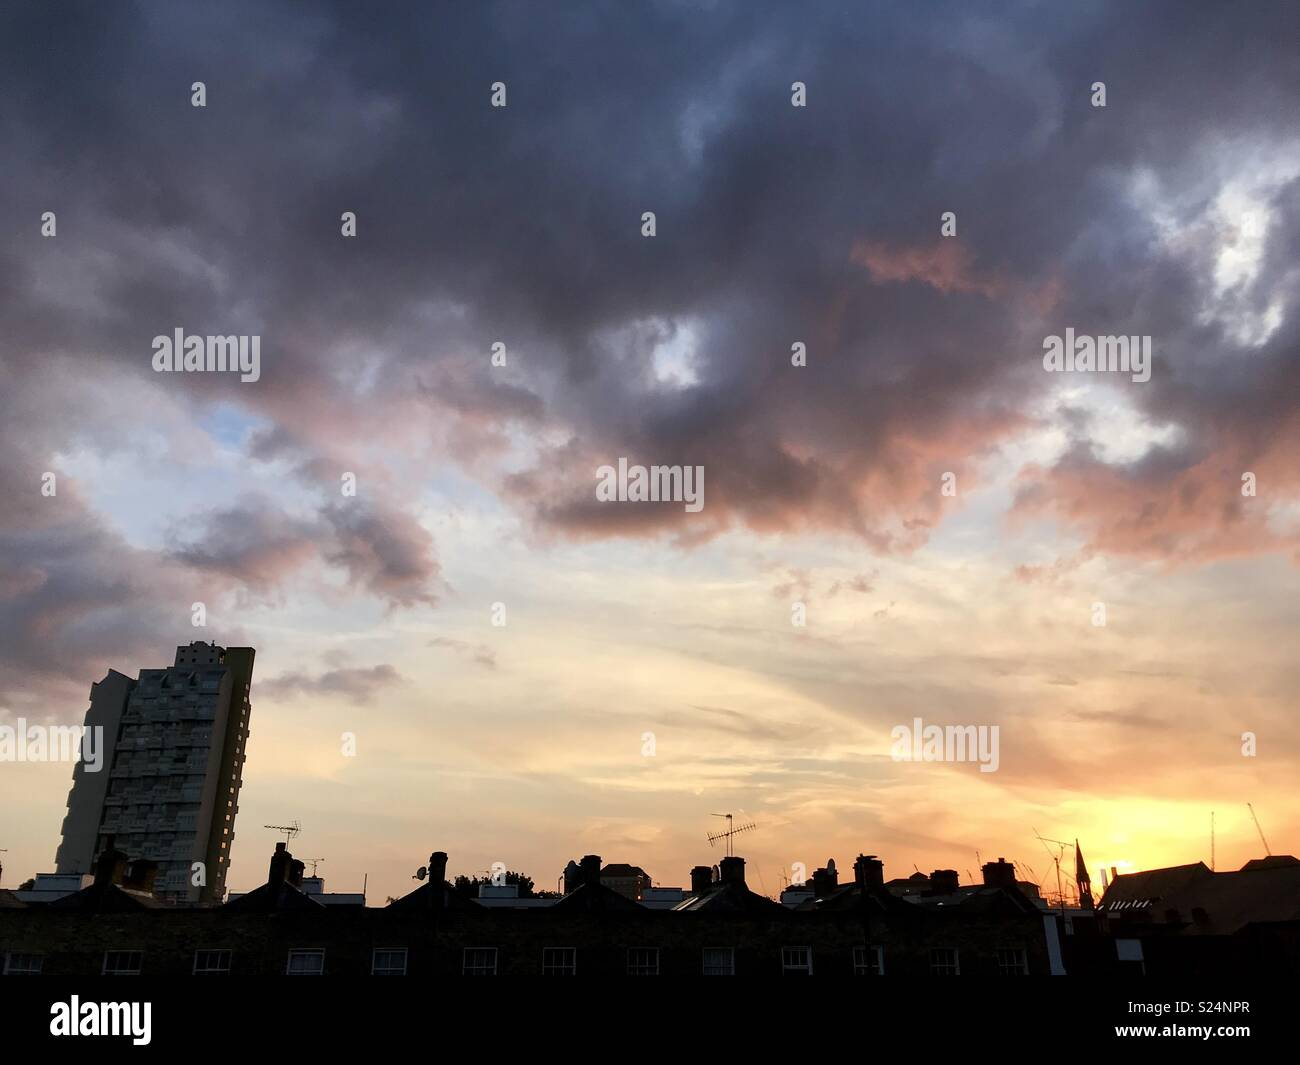 Sunset in Stockwell London - Stock Image